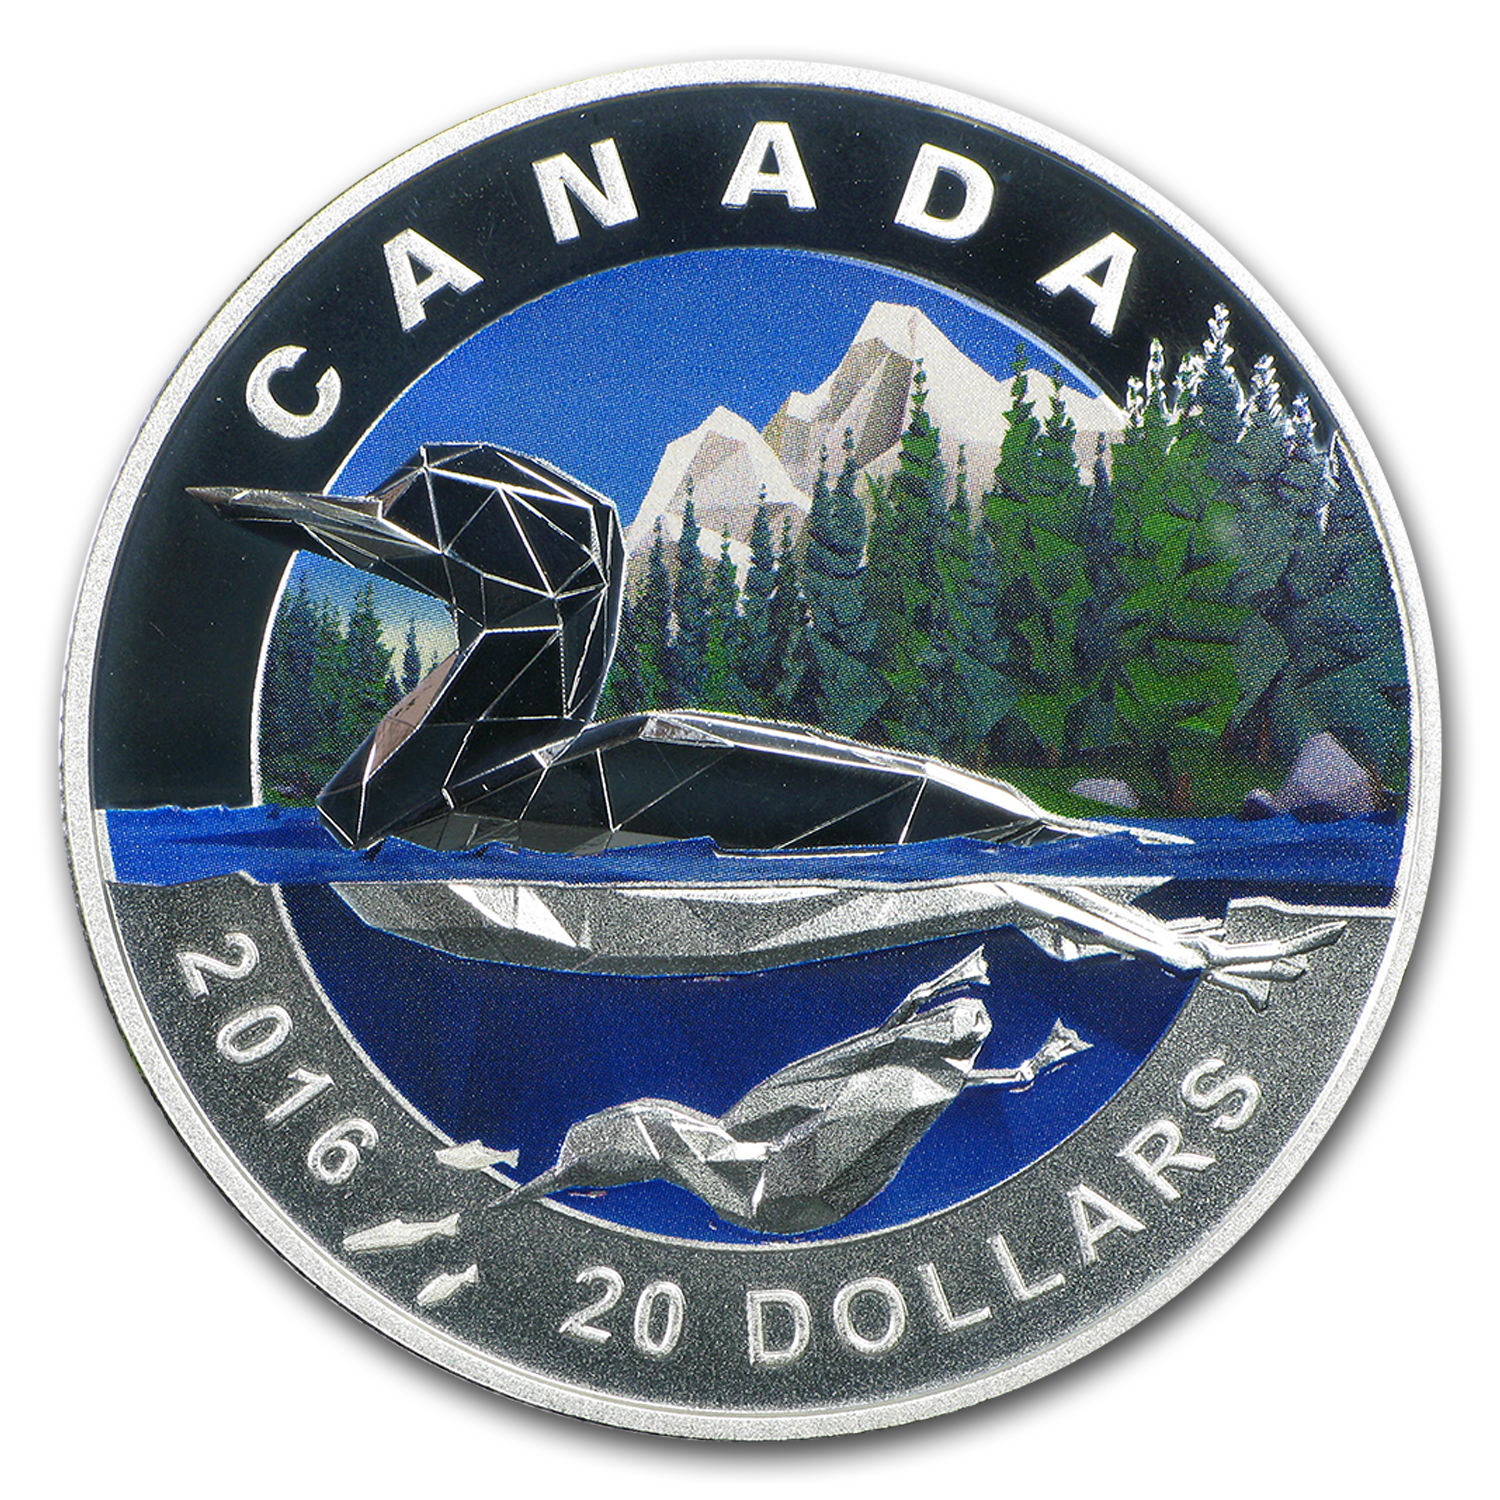 2016 Canada Silver 1 oz Proof Silver Geometry in Art: The Loon